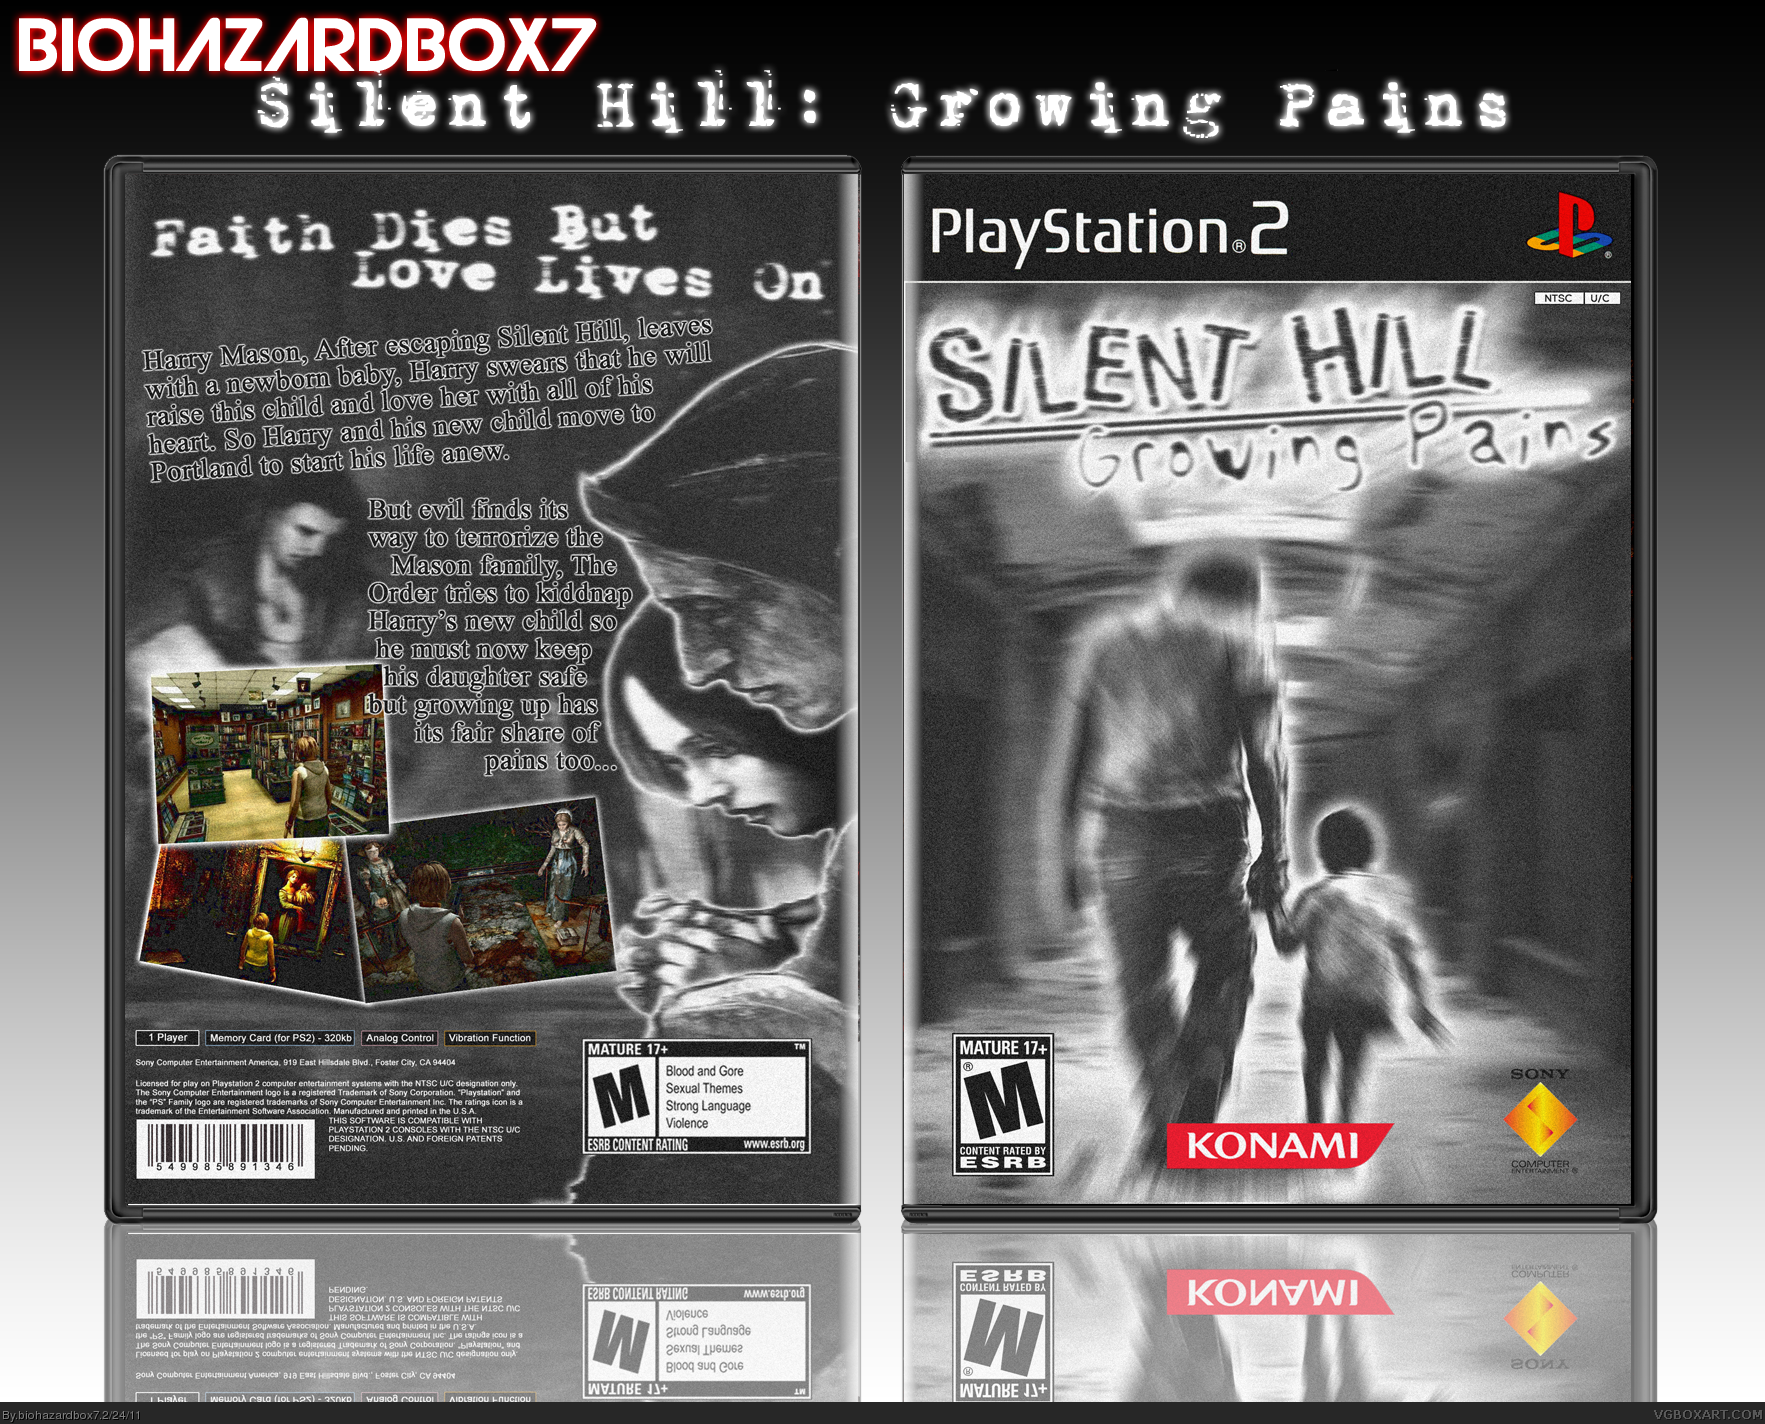 Silent Hill: Growing Pains box cover